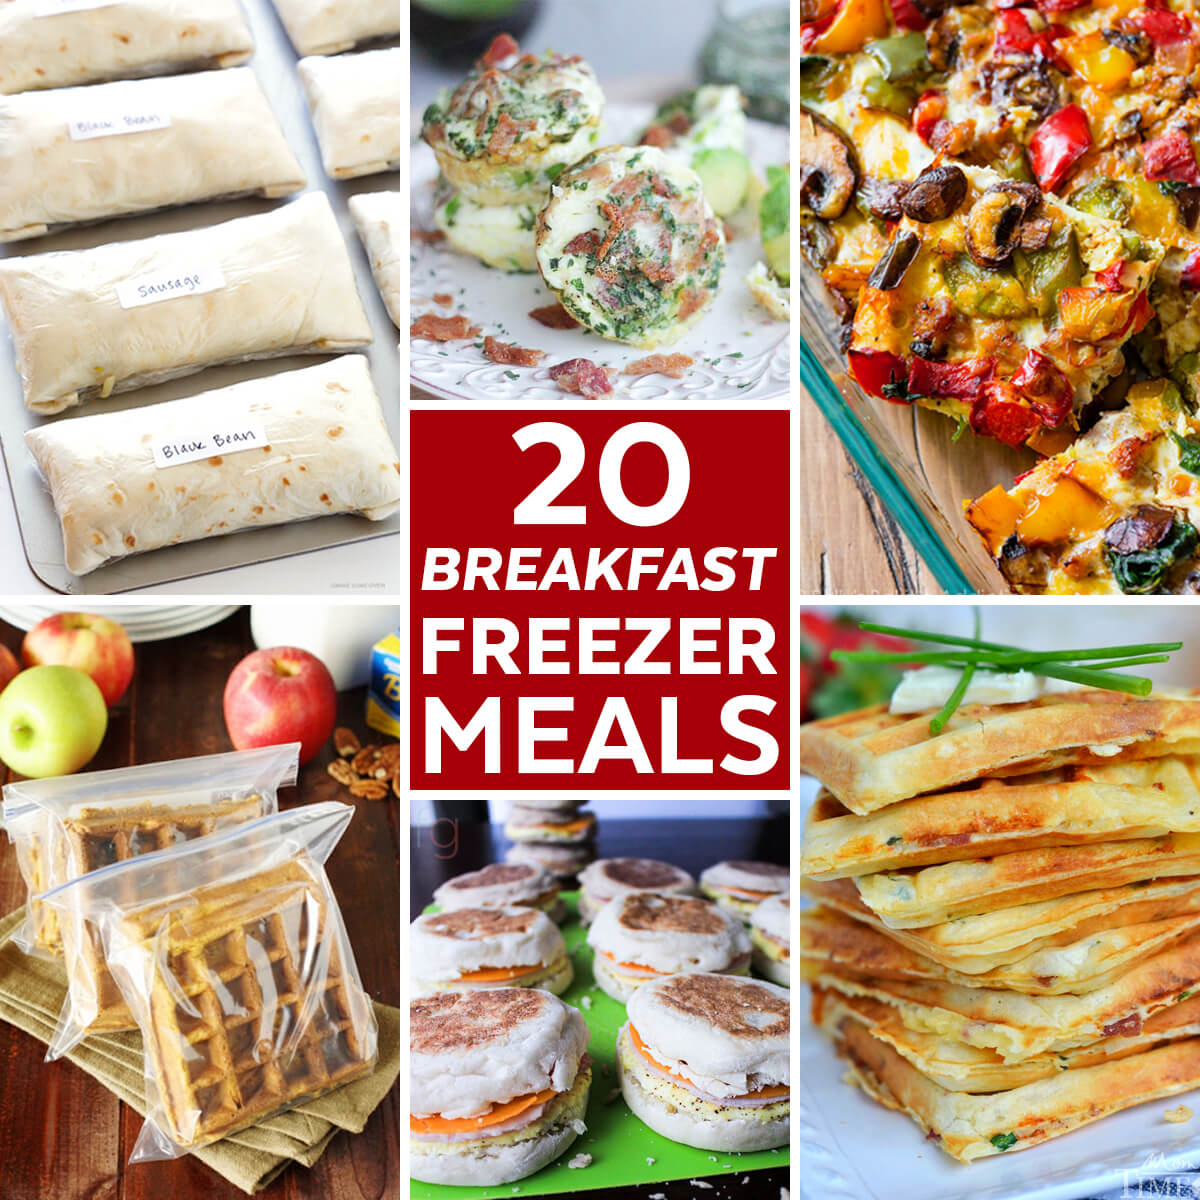 20 Make Ahead Camping Recipes For Easy Meal Planning: 20 Breakfast Freezer Meals